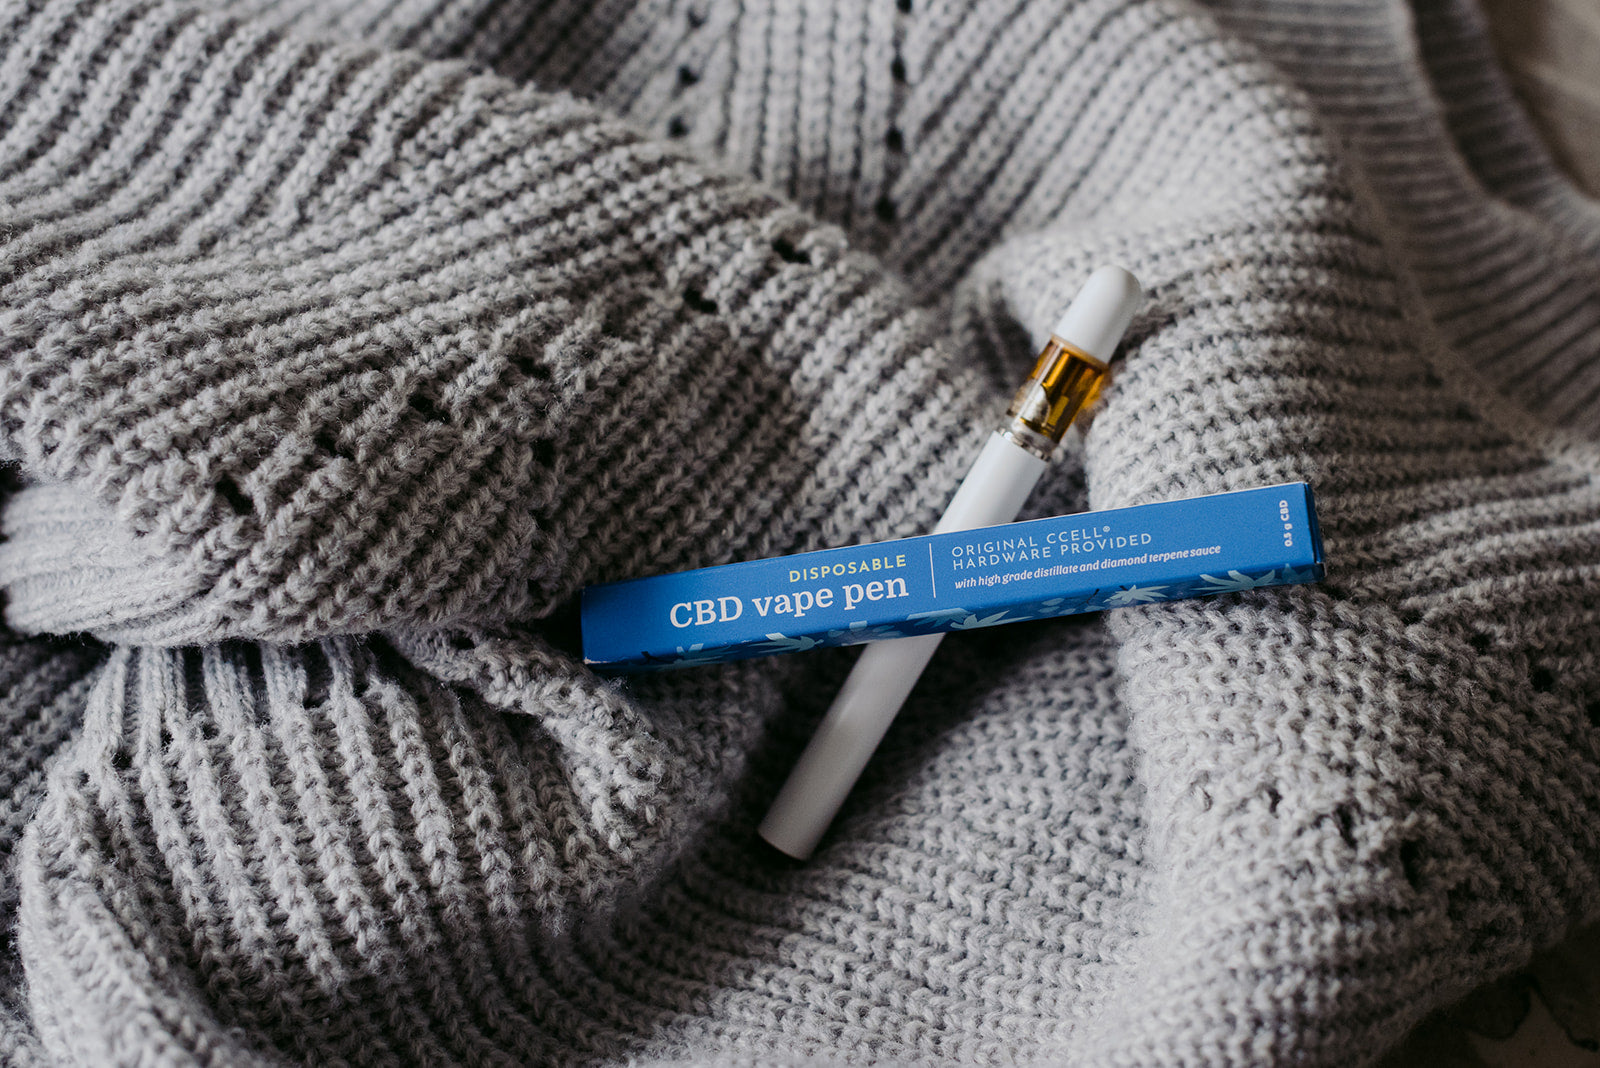 CBD vape pen and packaging laying on a grey sweater